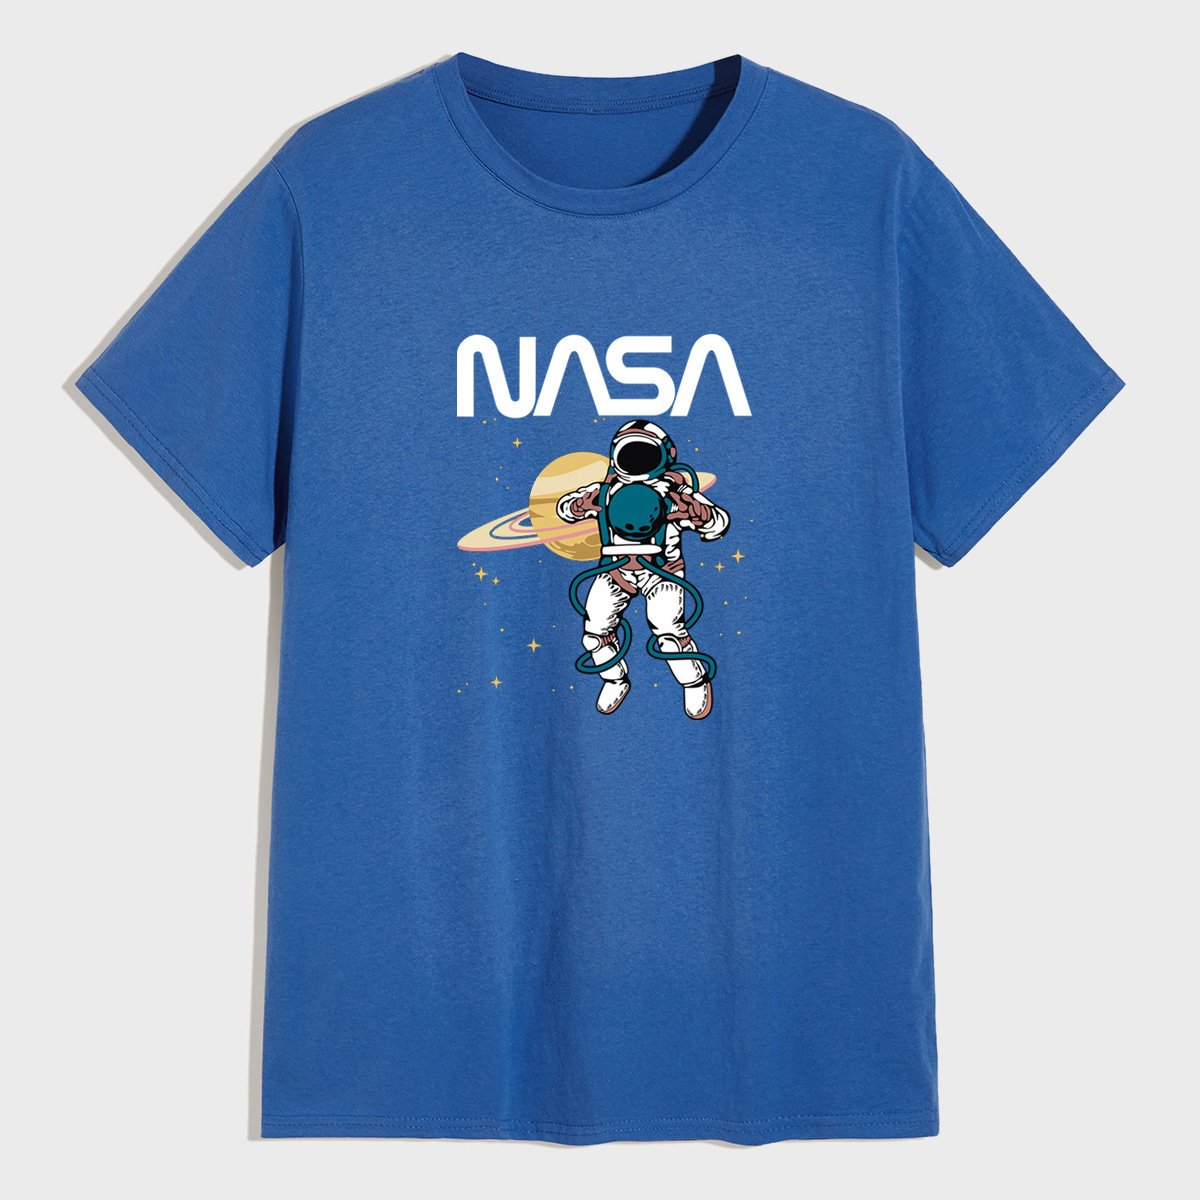 Nasa Shirts Nasa Printed Short Sleeve shirts